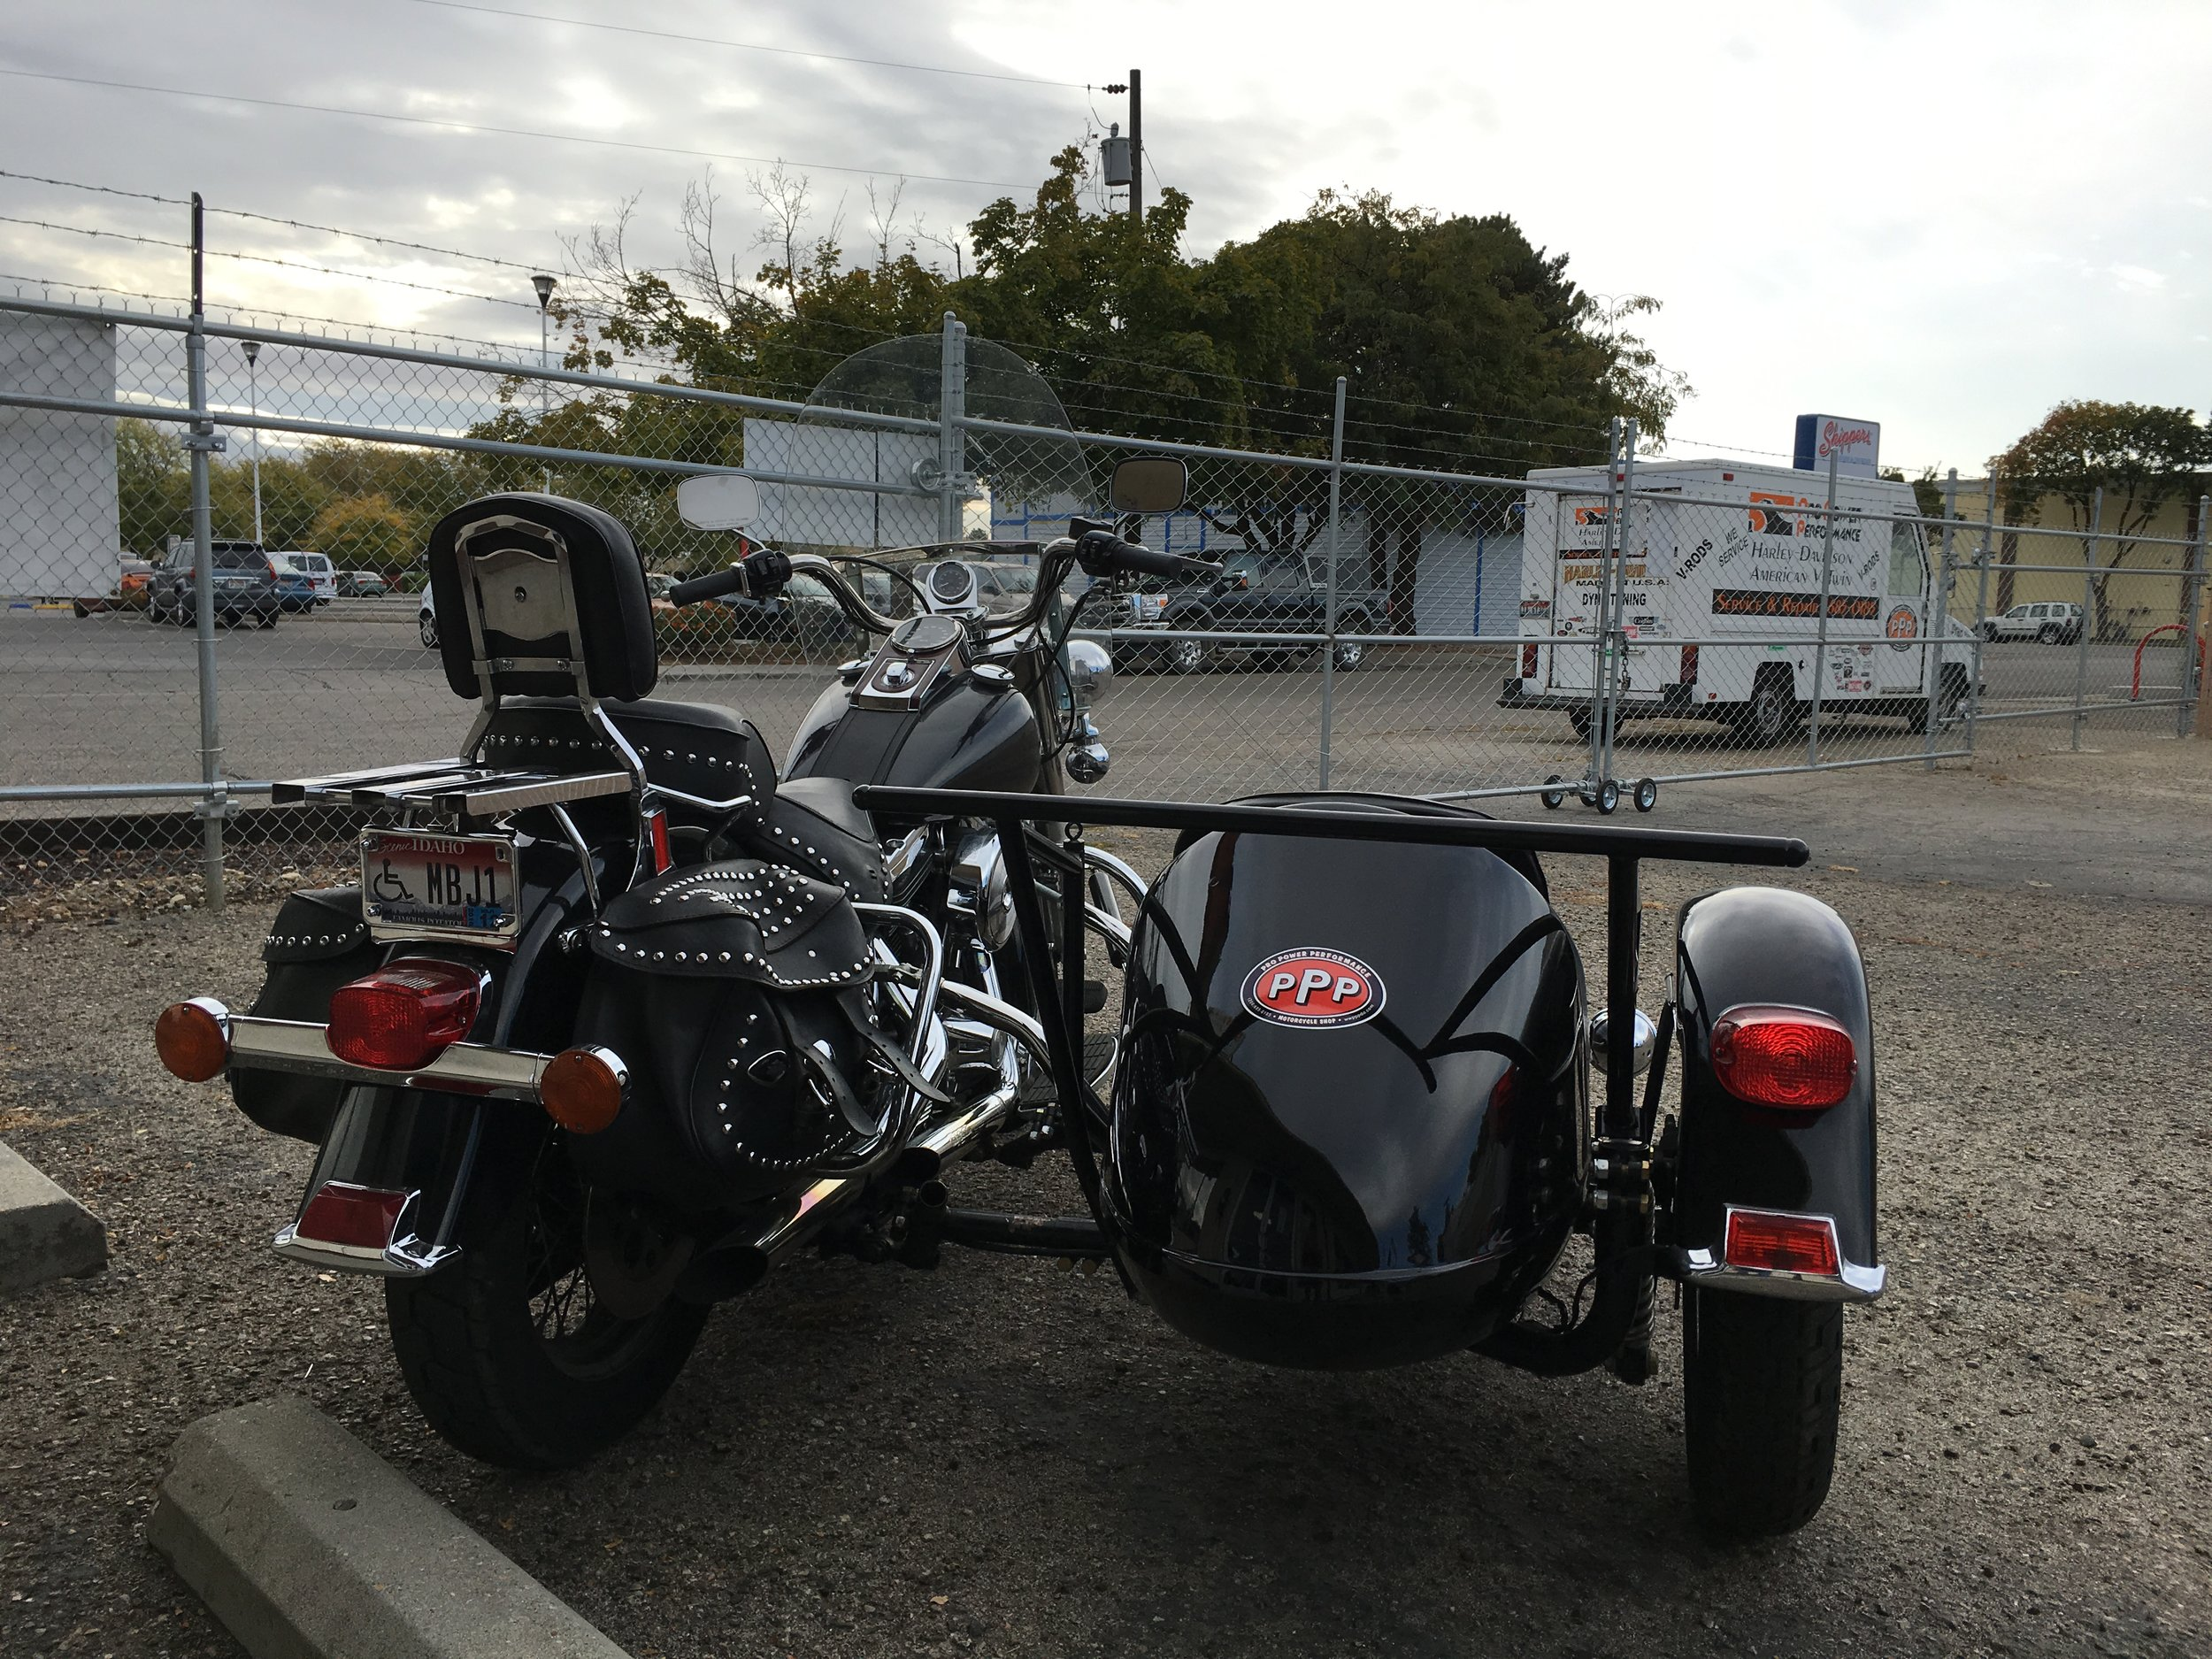 1996 HARLEY DAVIDSON FLST WITH SIDECAR - PROJECT COMPLETED.  THIS ONE IS FOR SALE!